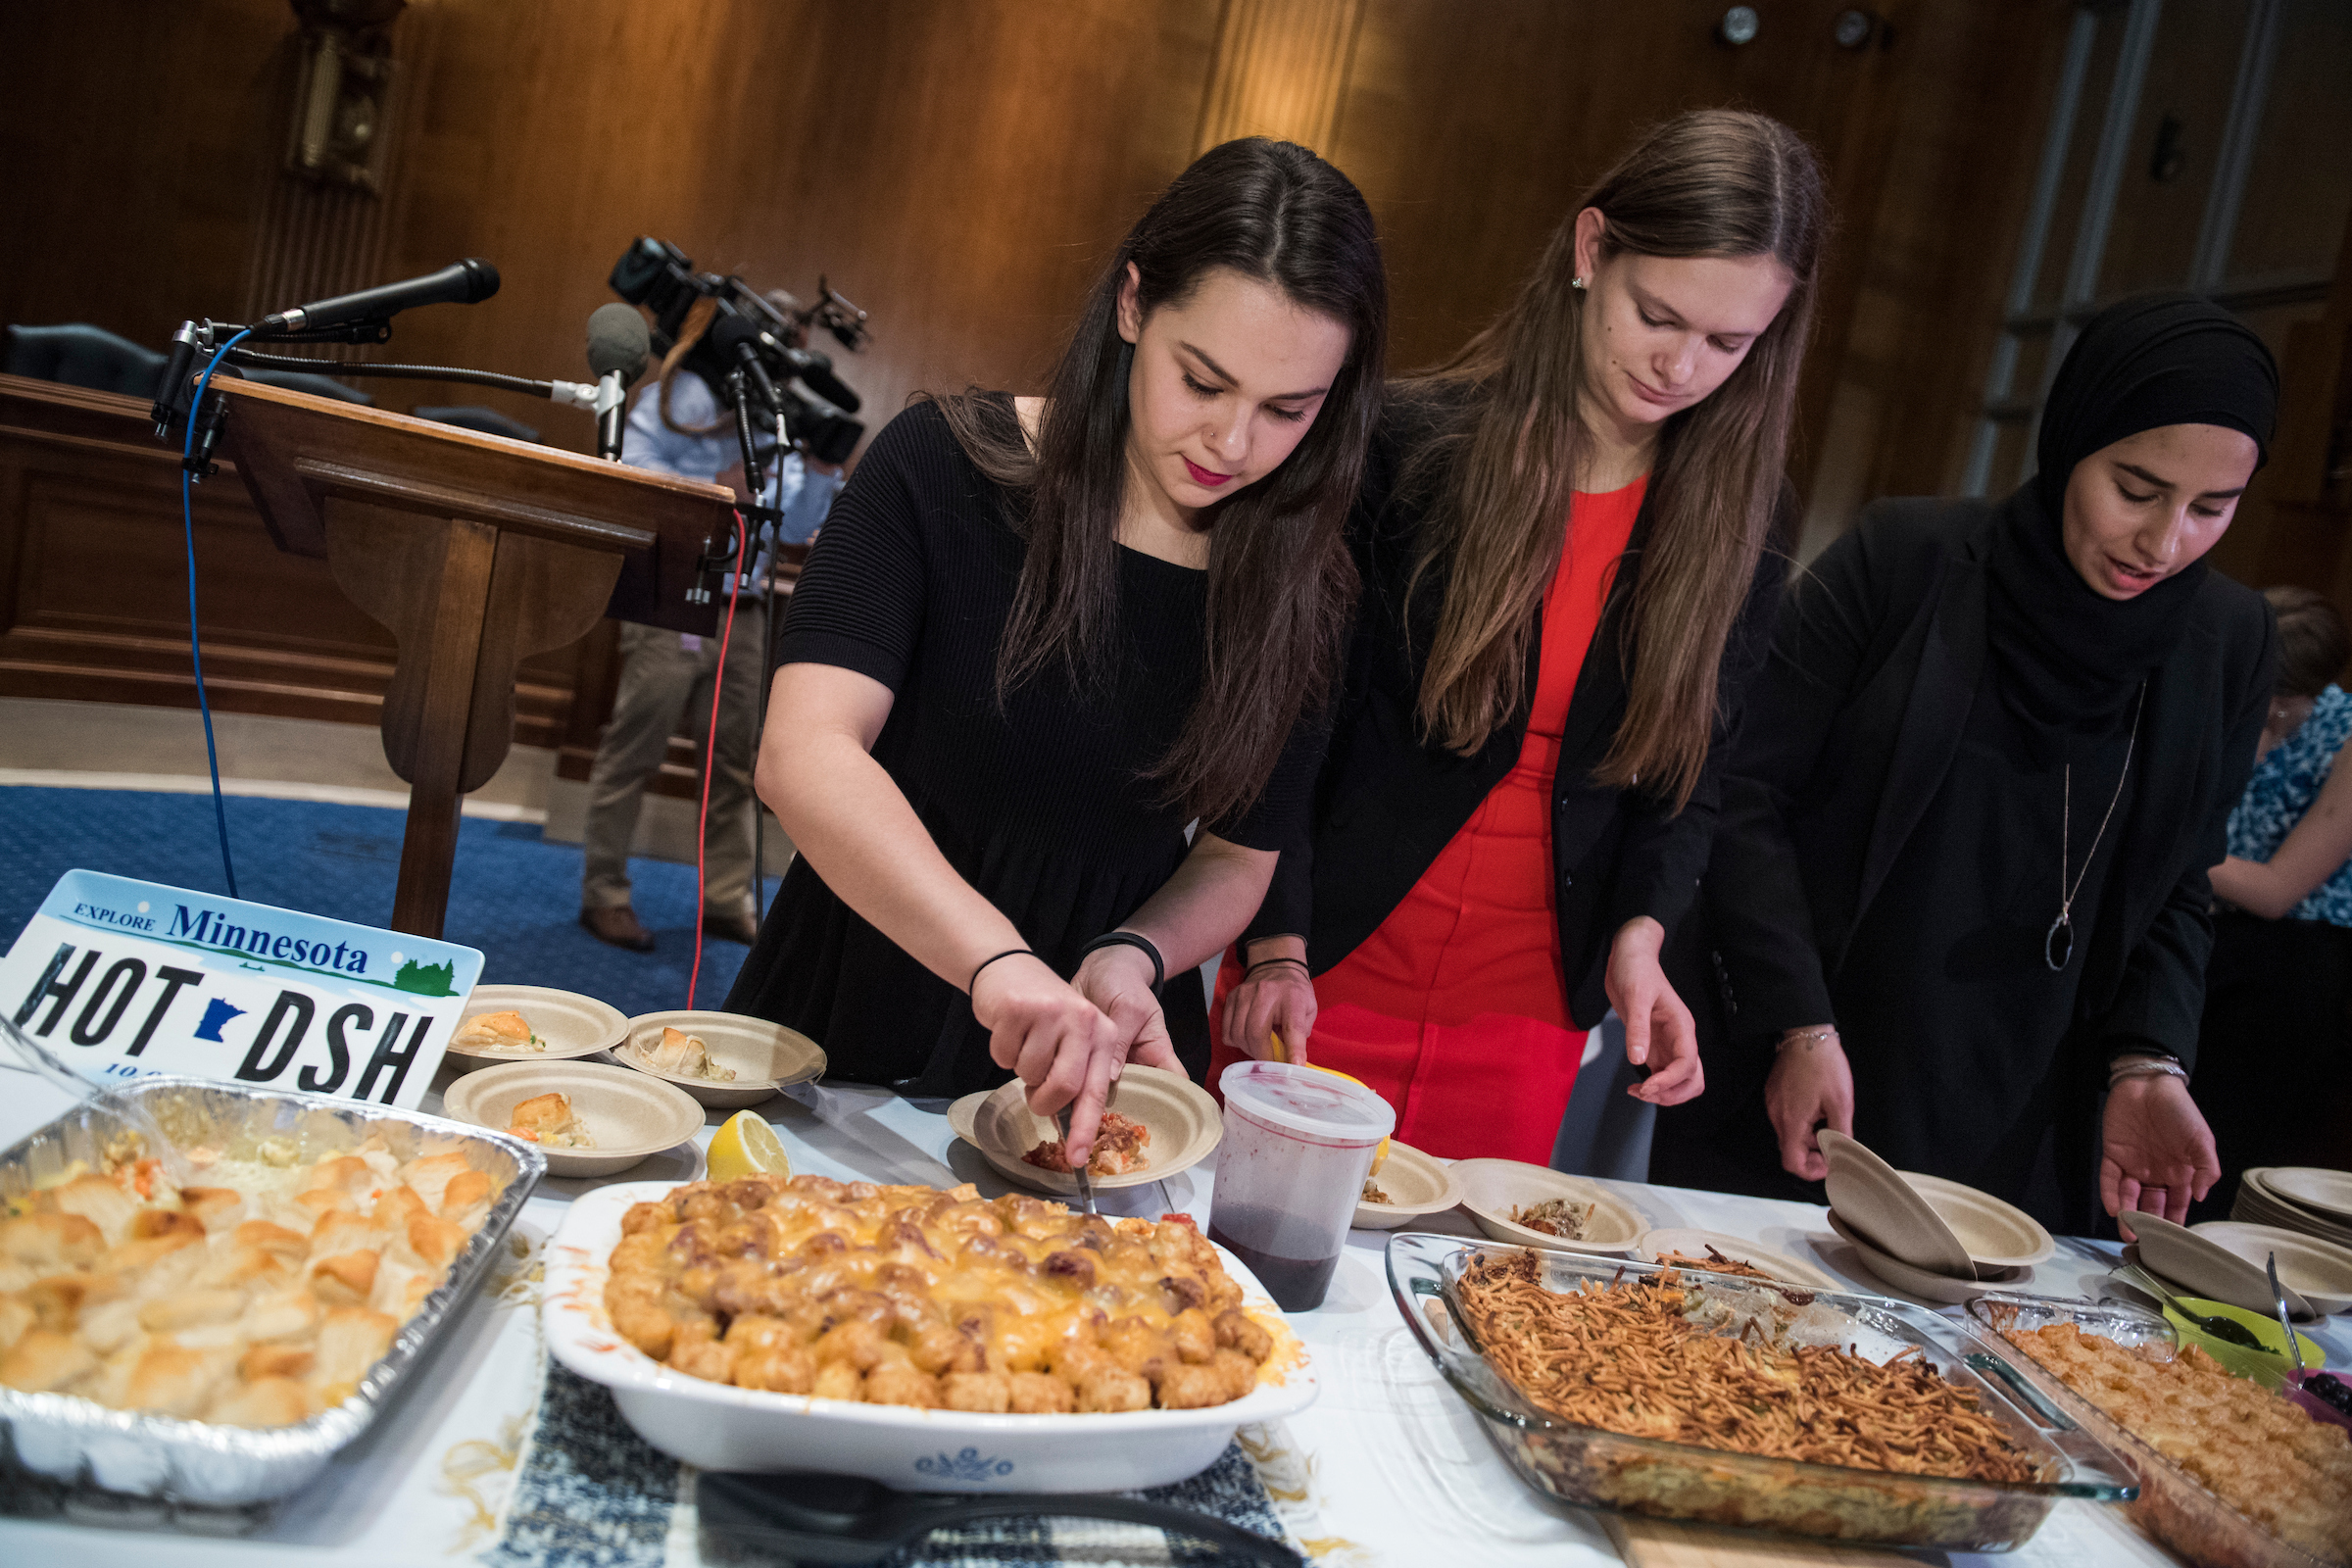 Aides to Sen. Al Franken, D-Minn., from left, Naomi Sibel, Erin Carvers, and Ayah Housini, serve food during the annual Minnesota Congressional Delegation Hotdish Competition in Dirksen Building on Wednesday. (Tom Williams/CQ Roll Call)